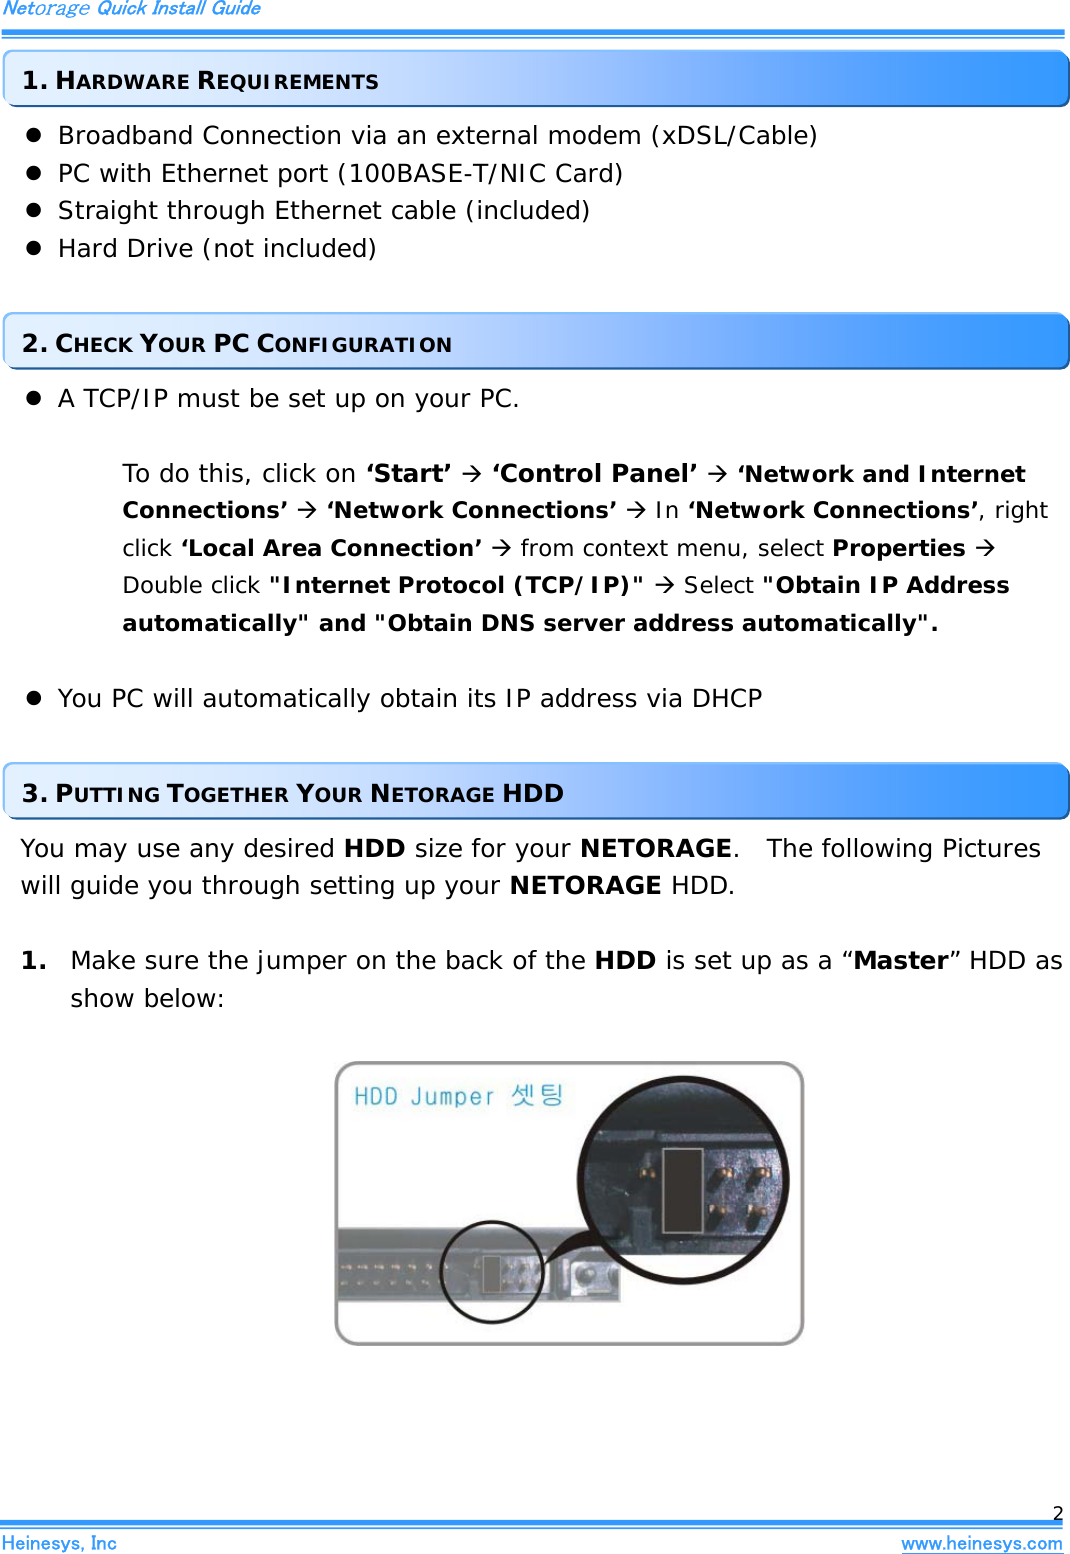 Heinesys Ntg100 Netorage User Manual Straight Through Ethernet Cable Quick Install Guide Inc Heinesyscom 2 Z Broadband Connection